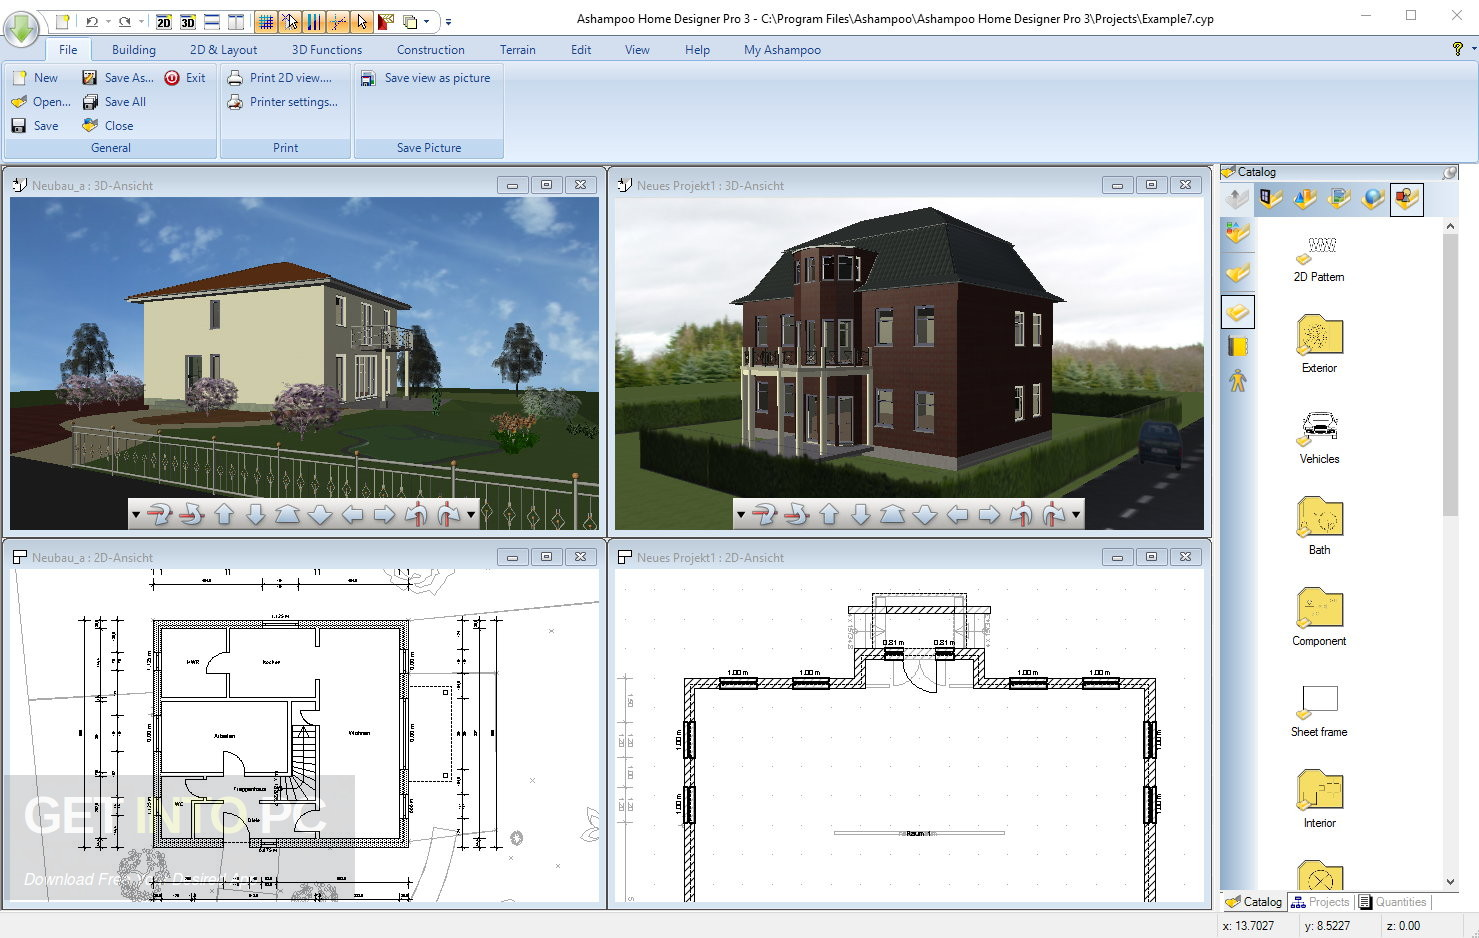 Ashampoo Home Designer Pro 4.1.0 Direct Link Download